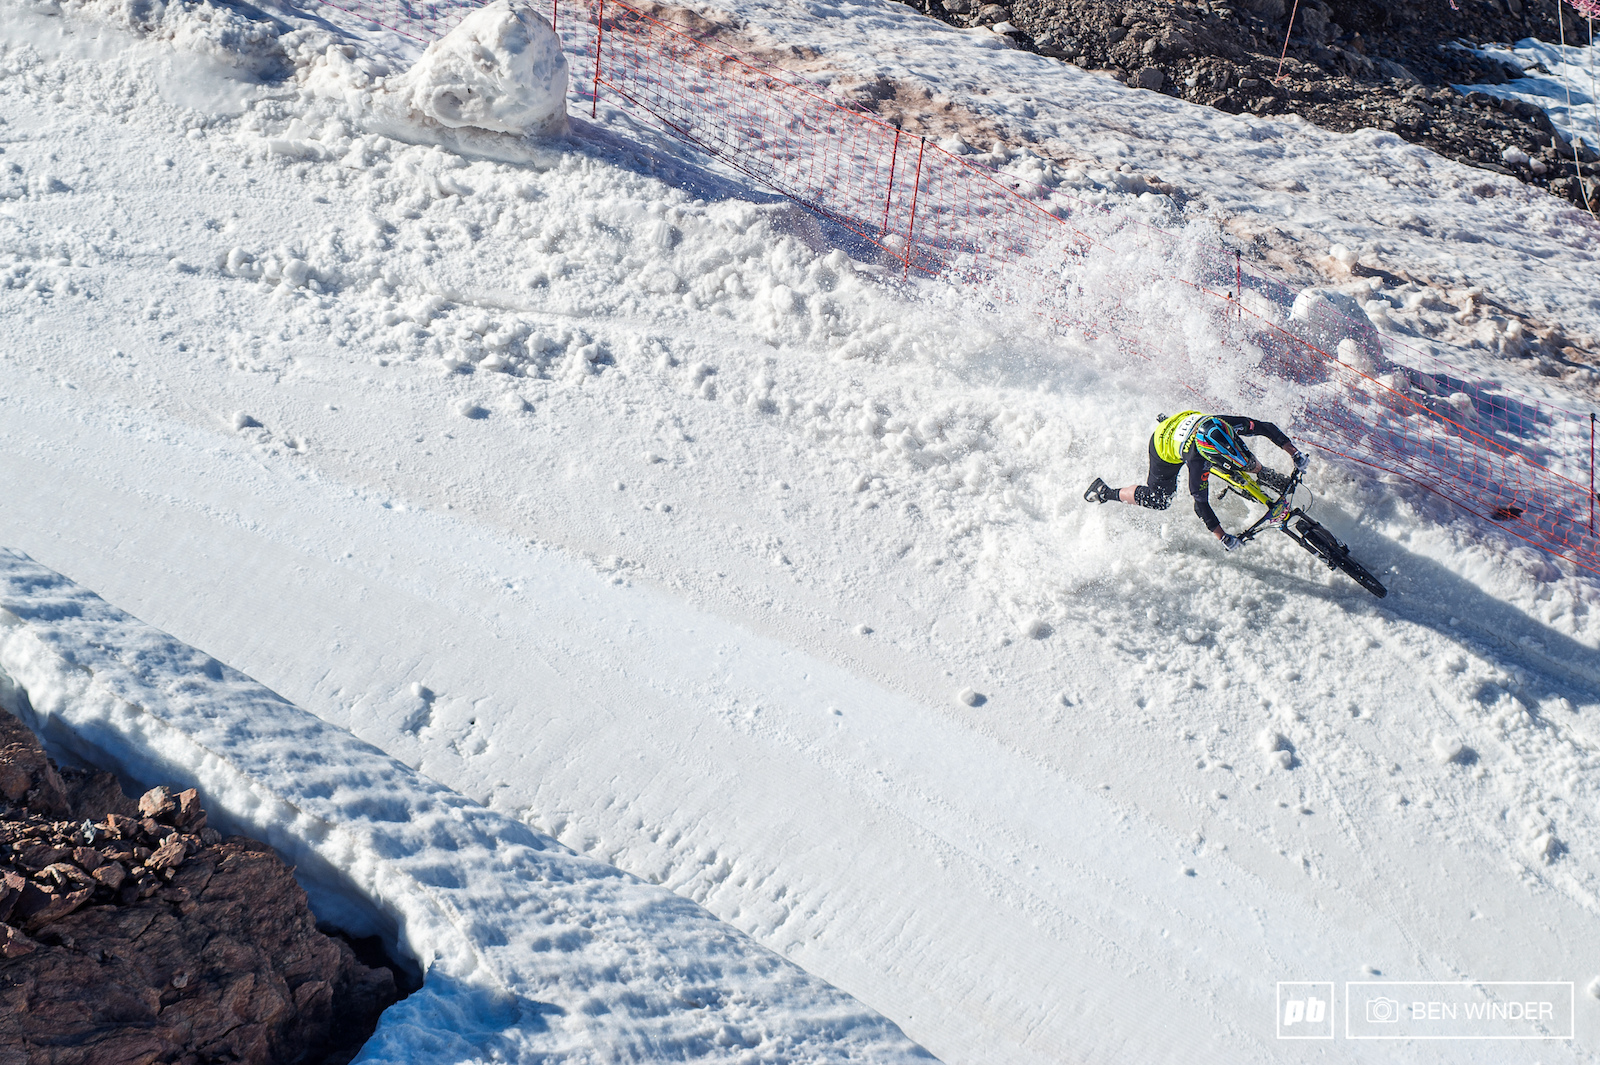 Bex Baraona found a bit of un-pisted snow.